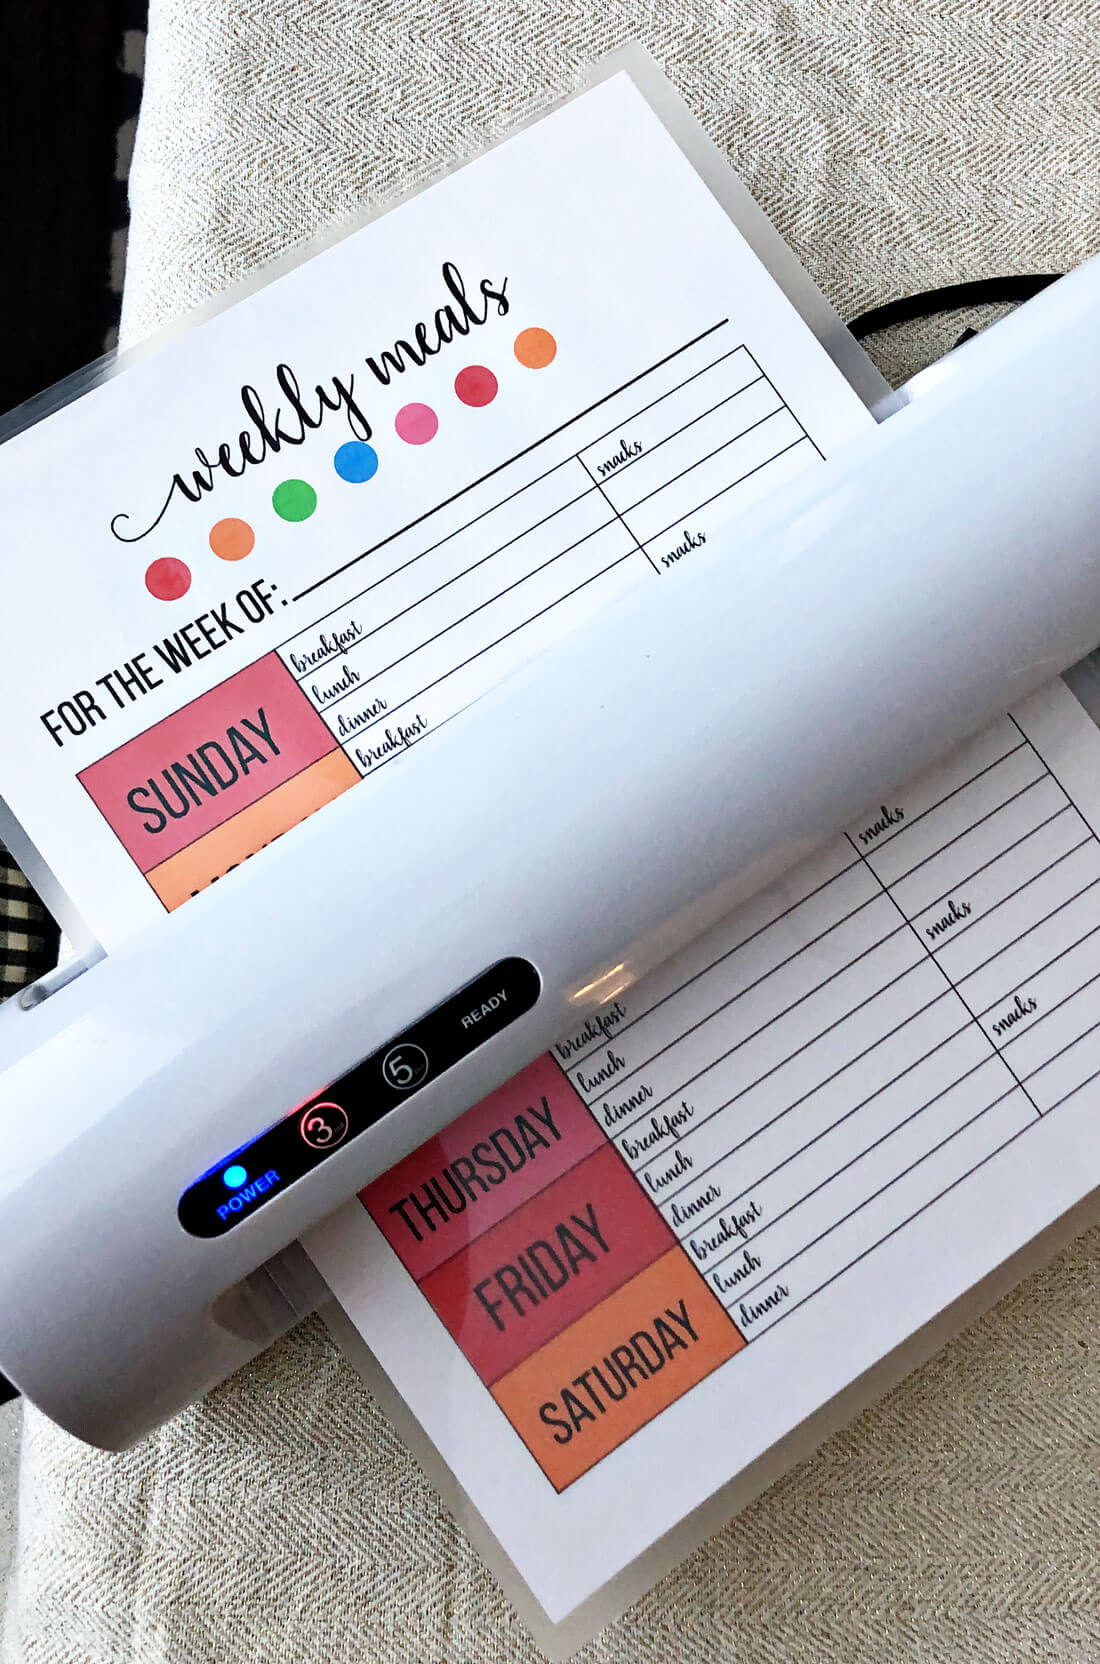 Printable Weekly Meal Planner - use this to get your calendar ready for meal prep. Using the laminator. www.thirtyhandmadedays.com